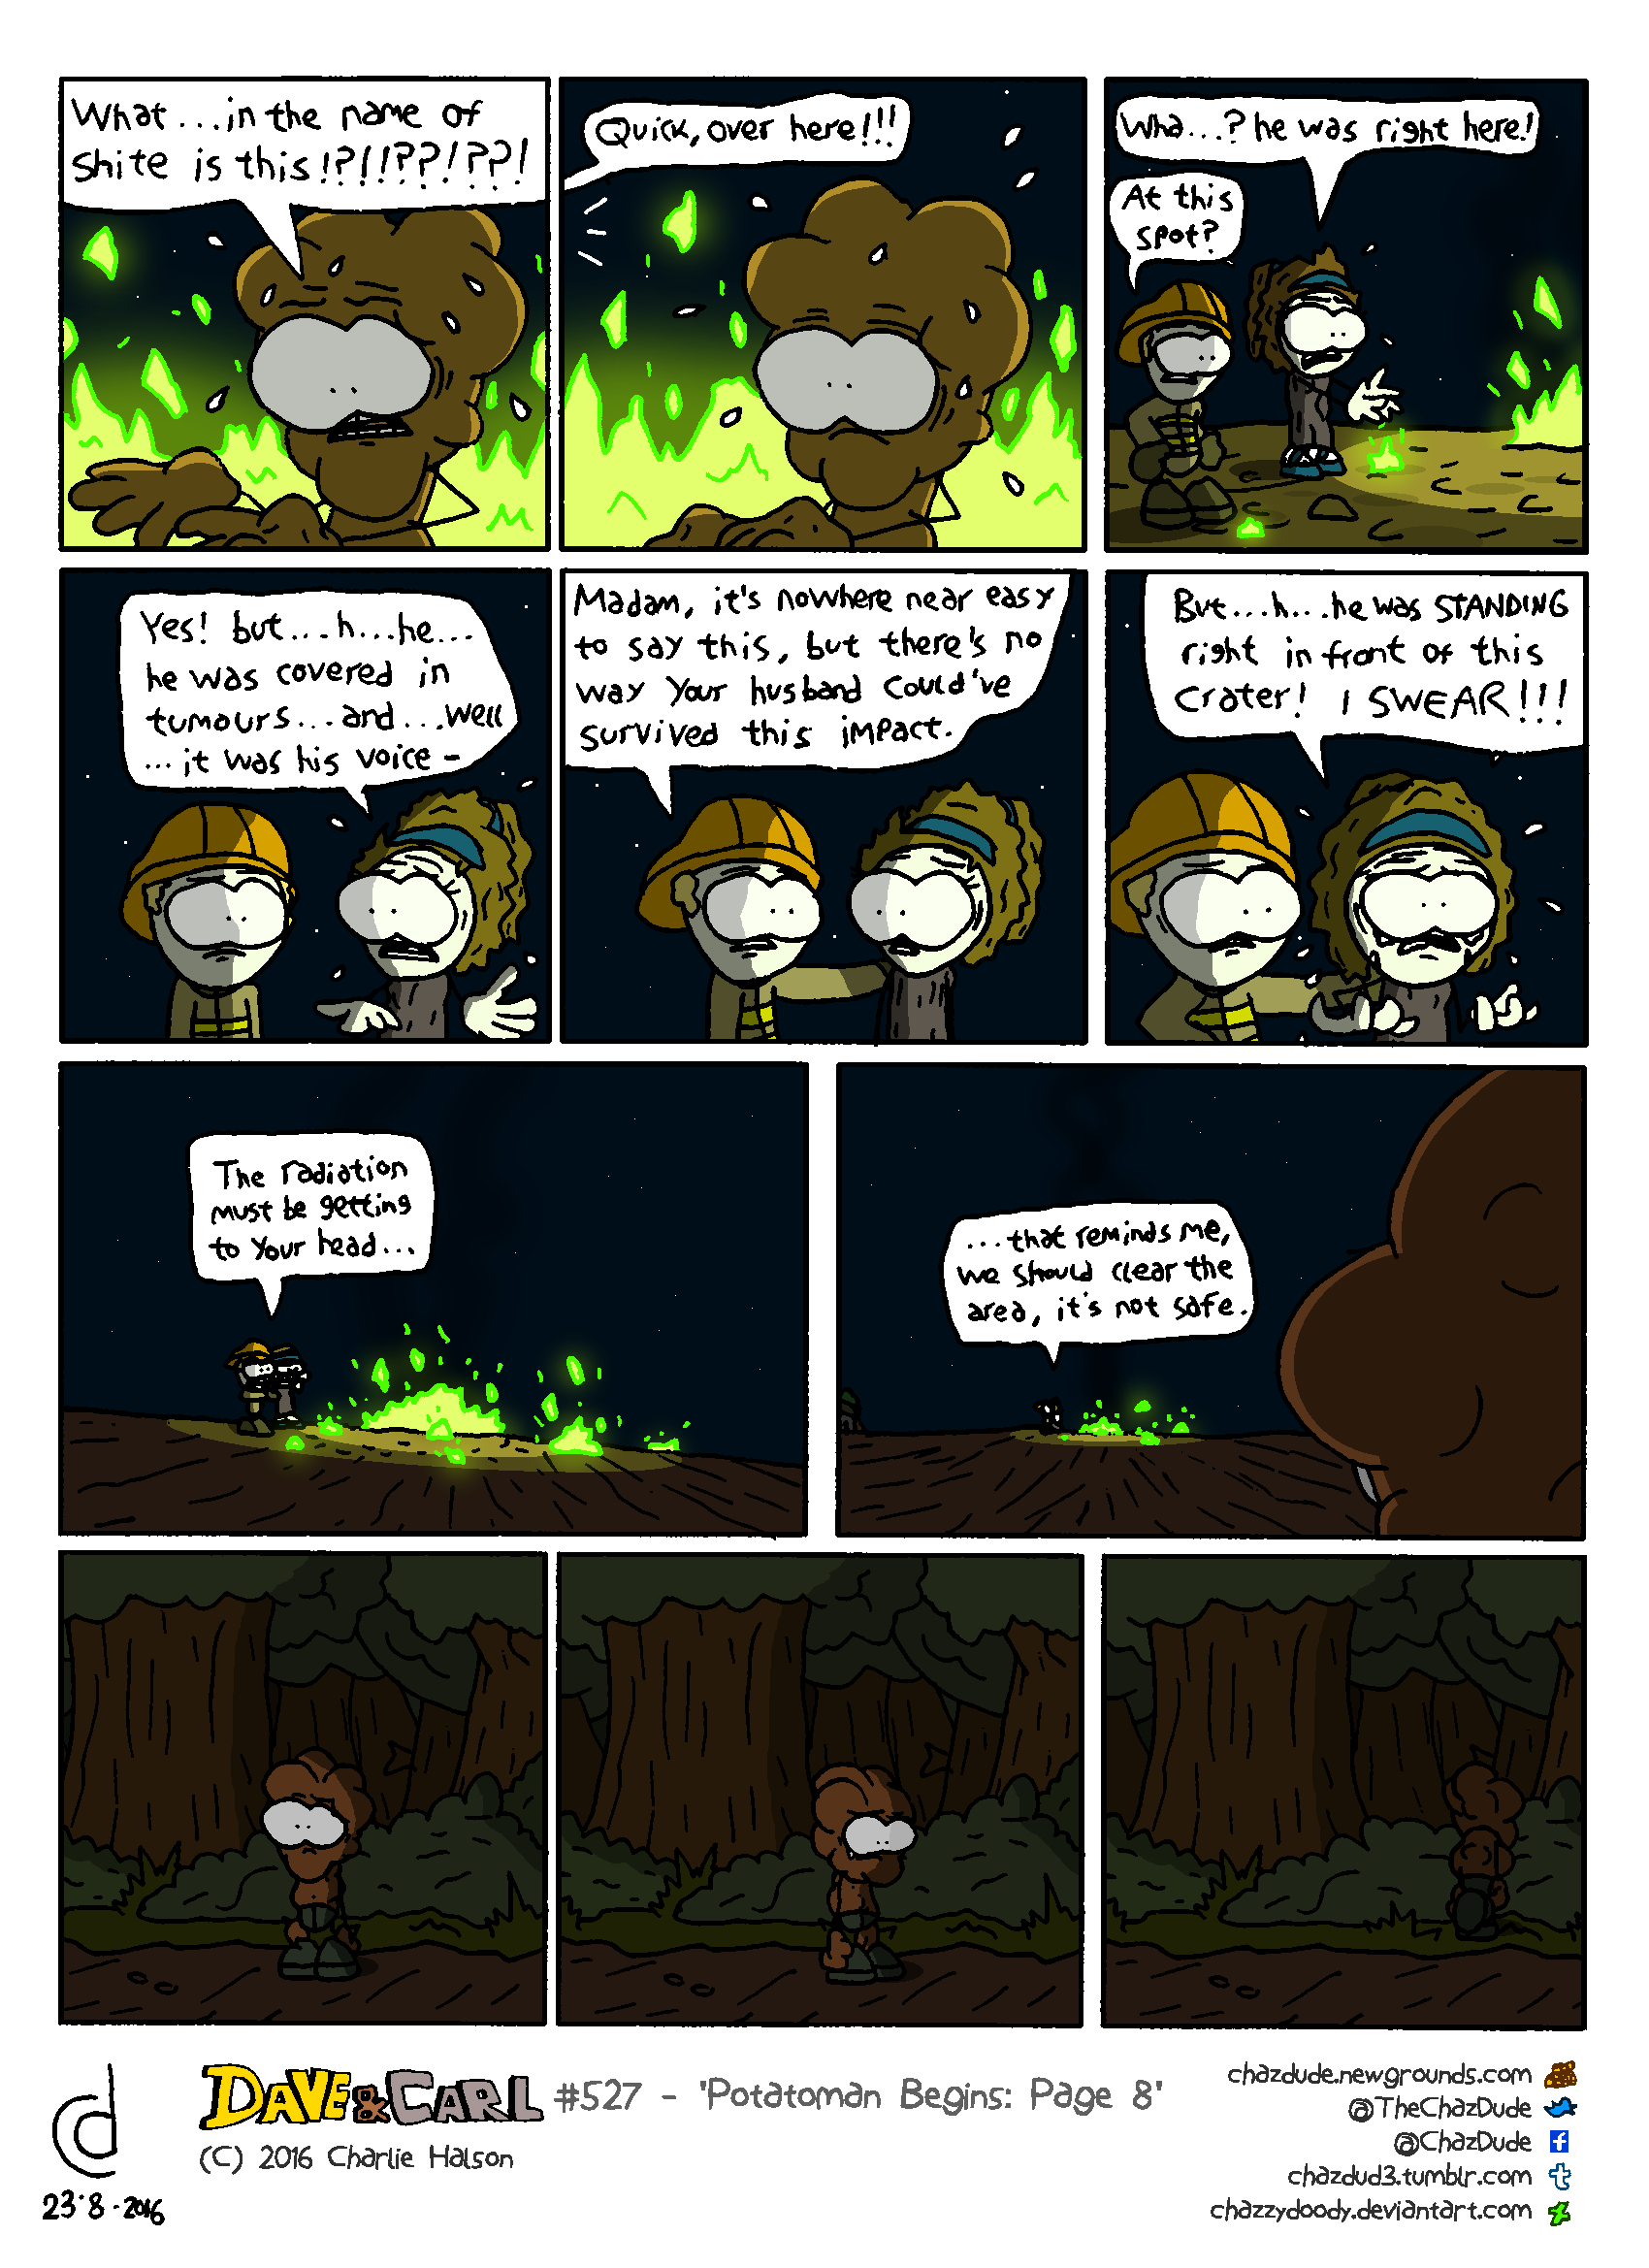 Potatoman Begins: Page 8